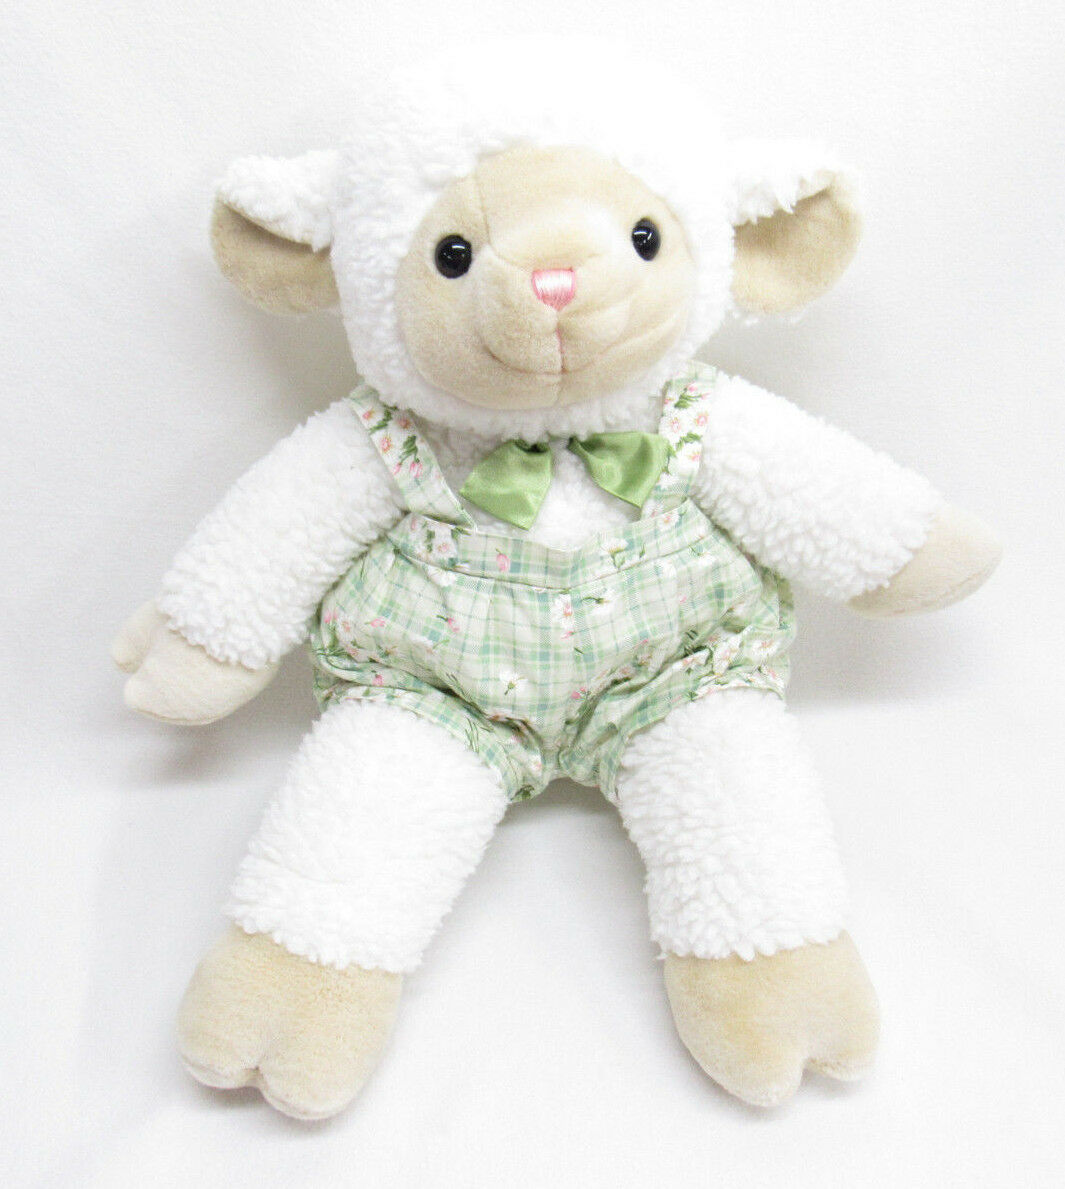 VTG JC PENNEY LAMB PLUSH LARGE 25